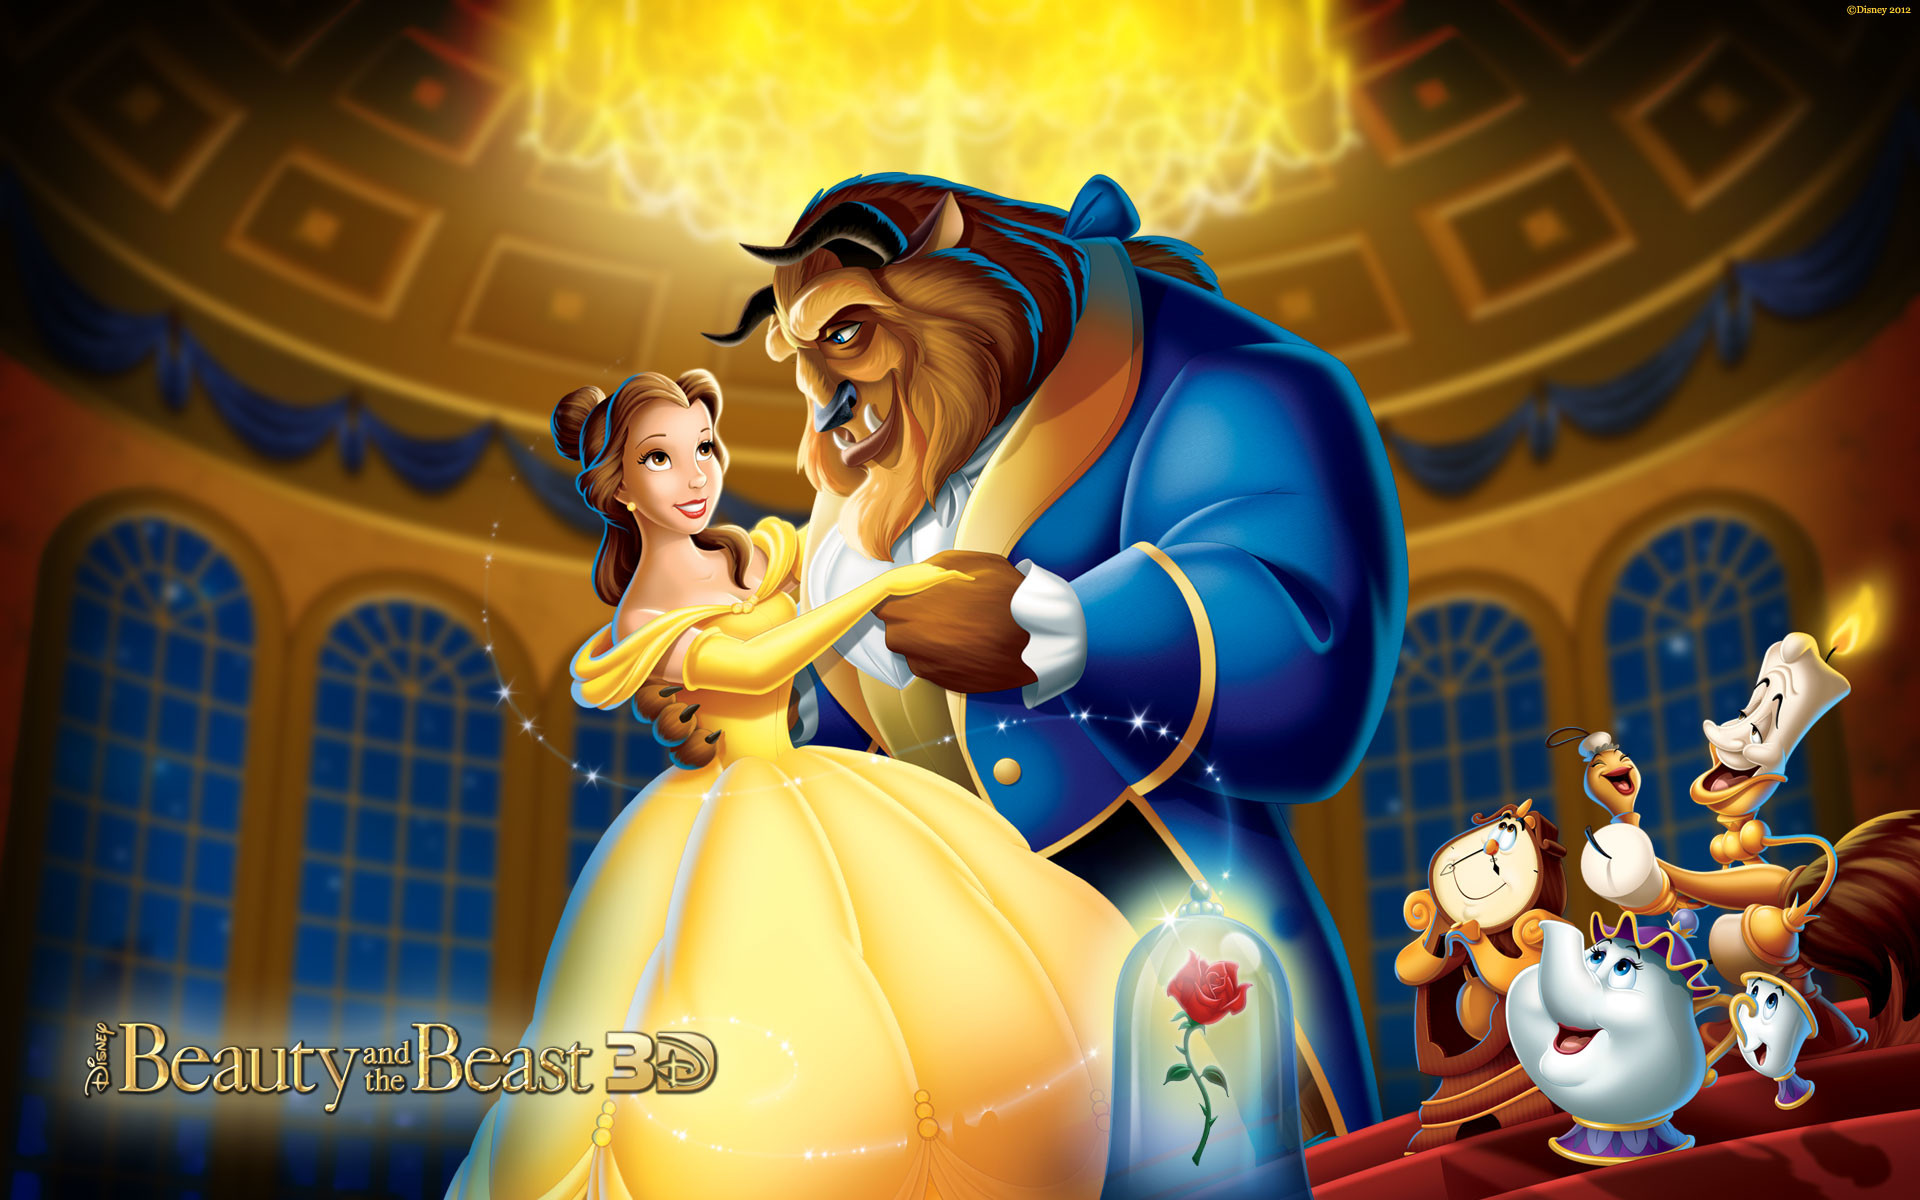 1920x1200 Beauty and the Beast Disney Princess Wallpaper for Tablet